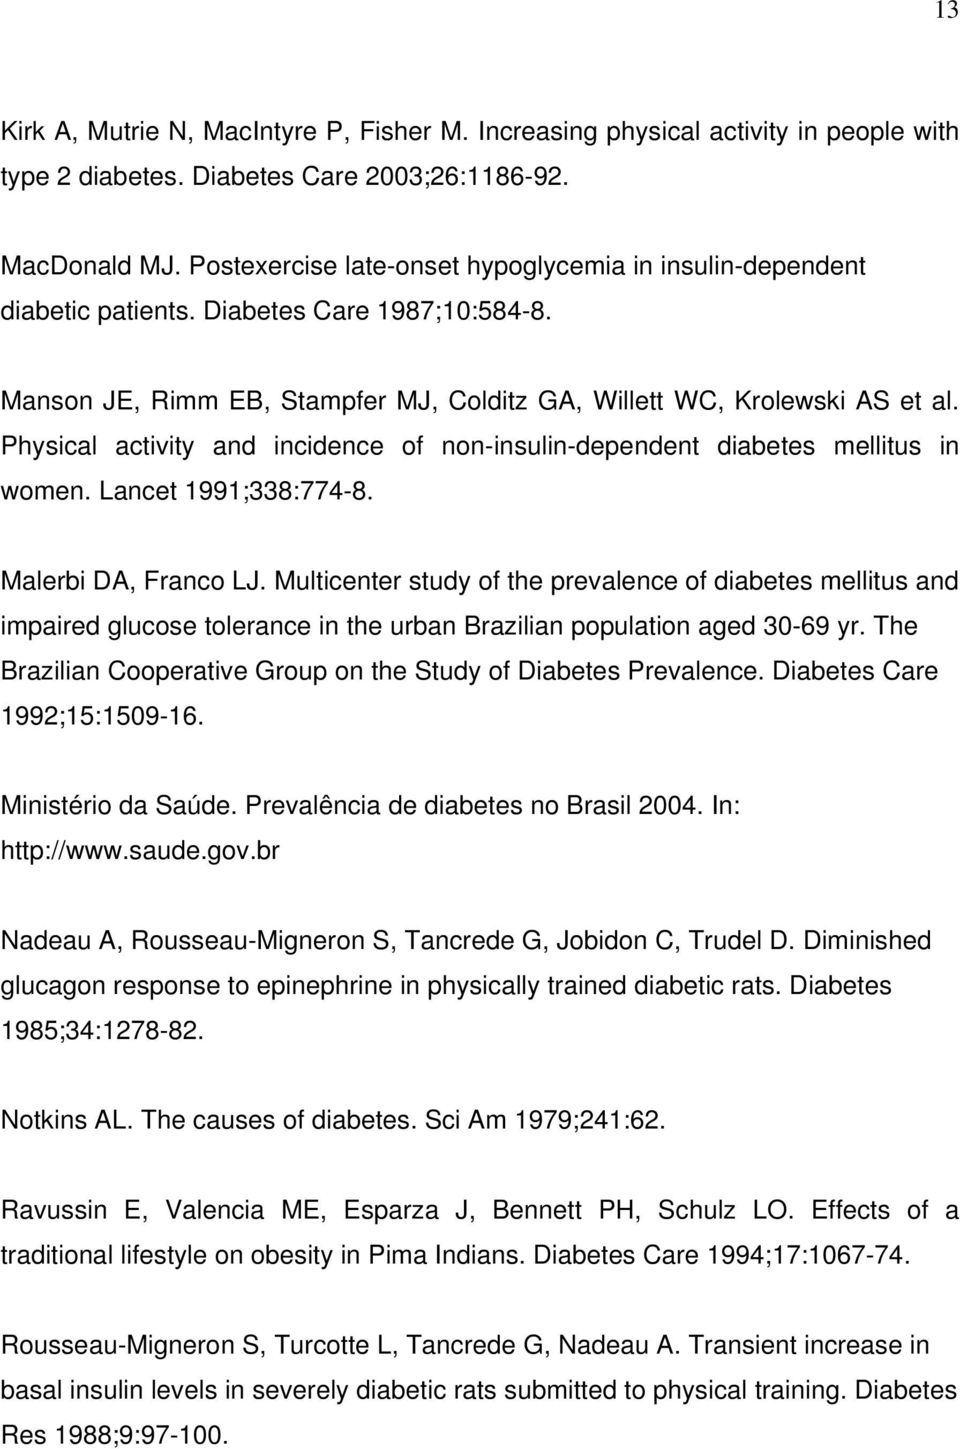 Physical activity and incidence of non-insulin-dependent diabetes mellitus in women. Lancet 1991;338:774-8. Malerbi DA, Franco LJ.